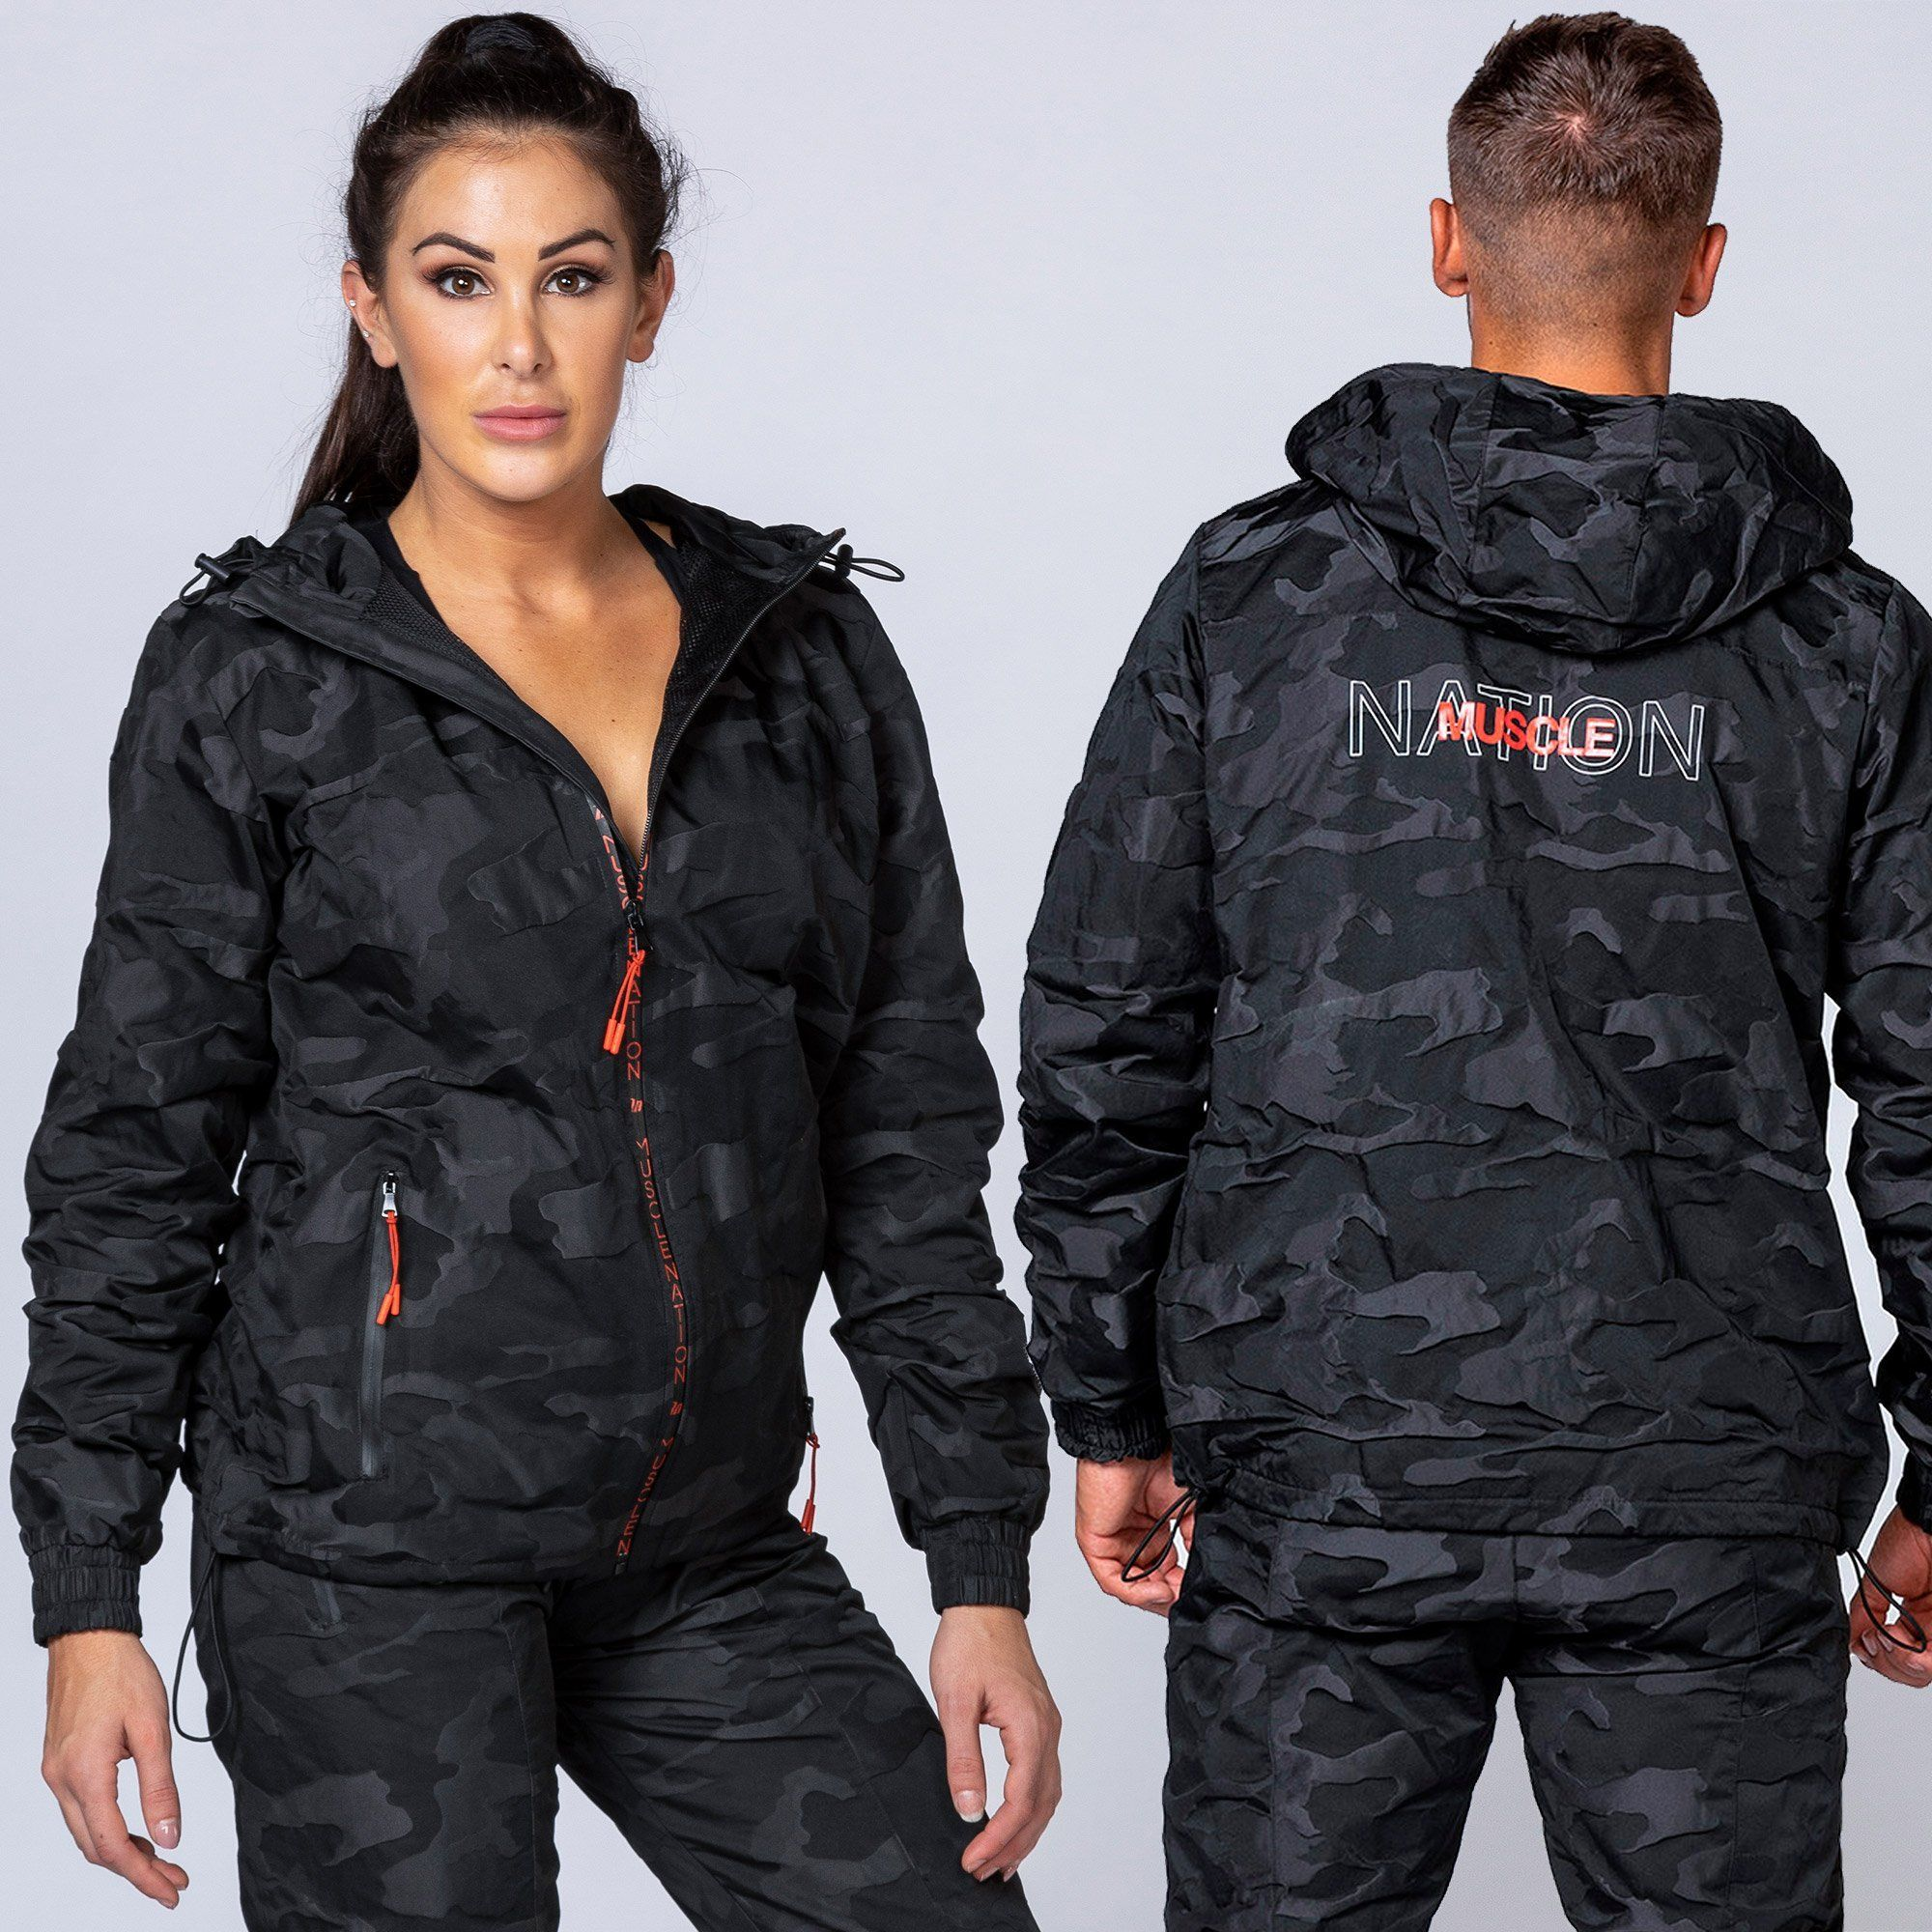 Muscle Nation Unisex Jacket - Black Camo